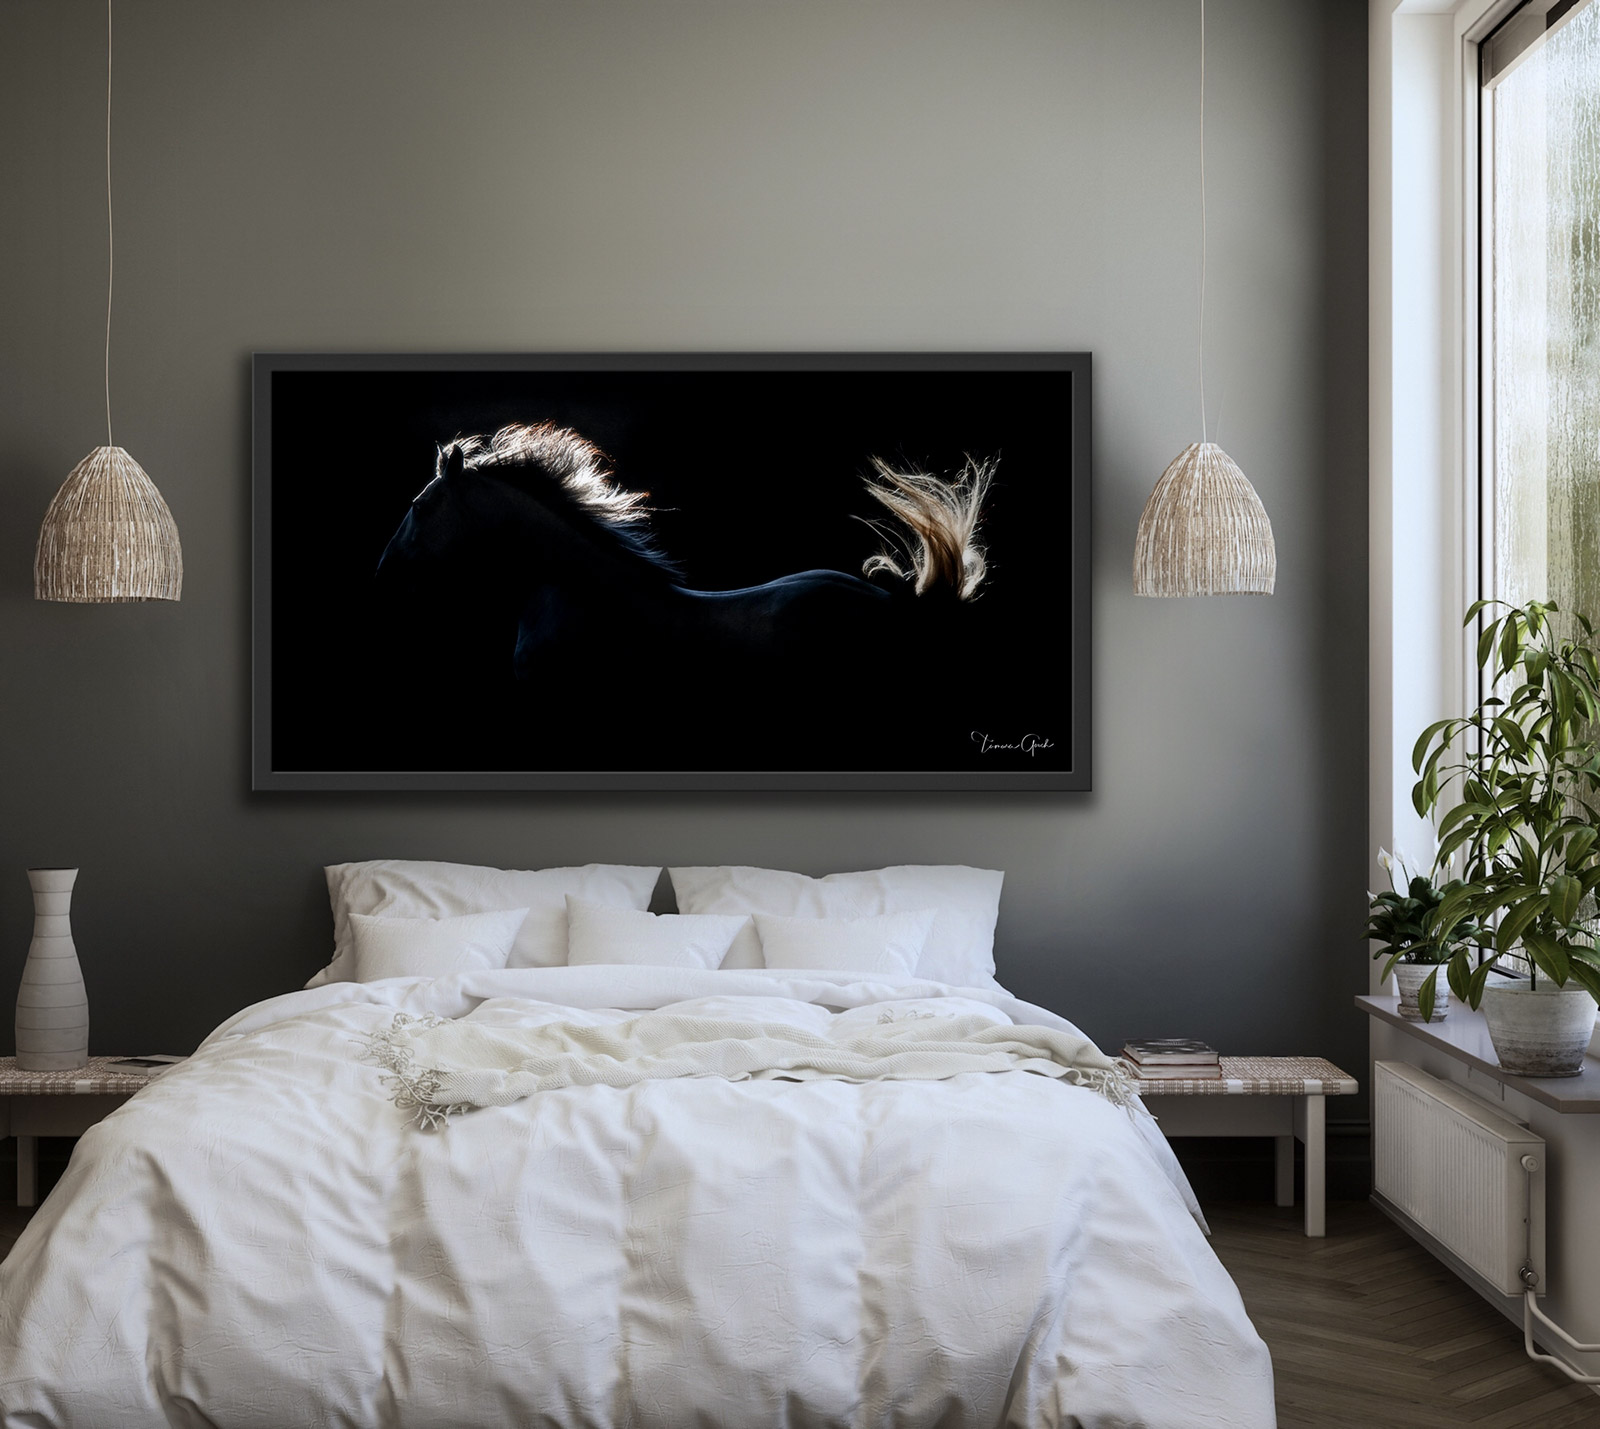 Lusitano, horse, PSL, equine, equestrian, photograph, photo, print, art, wall, interior, design, framed, bedroom, pano, backlight, luxury, fine art, limited, edition, photo